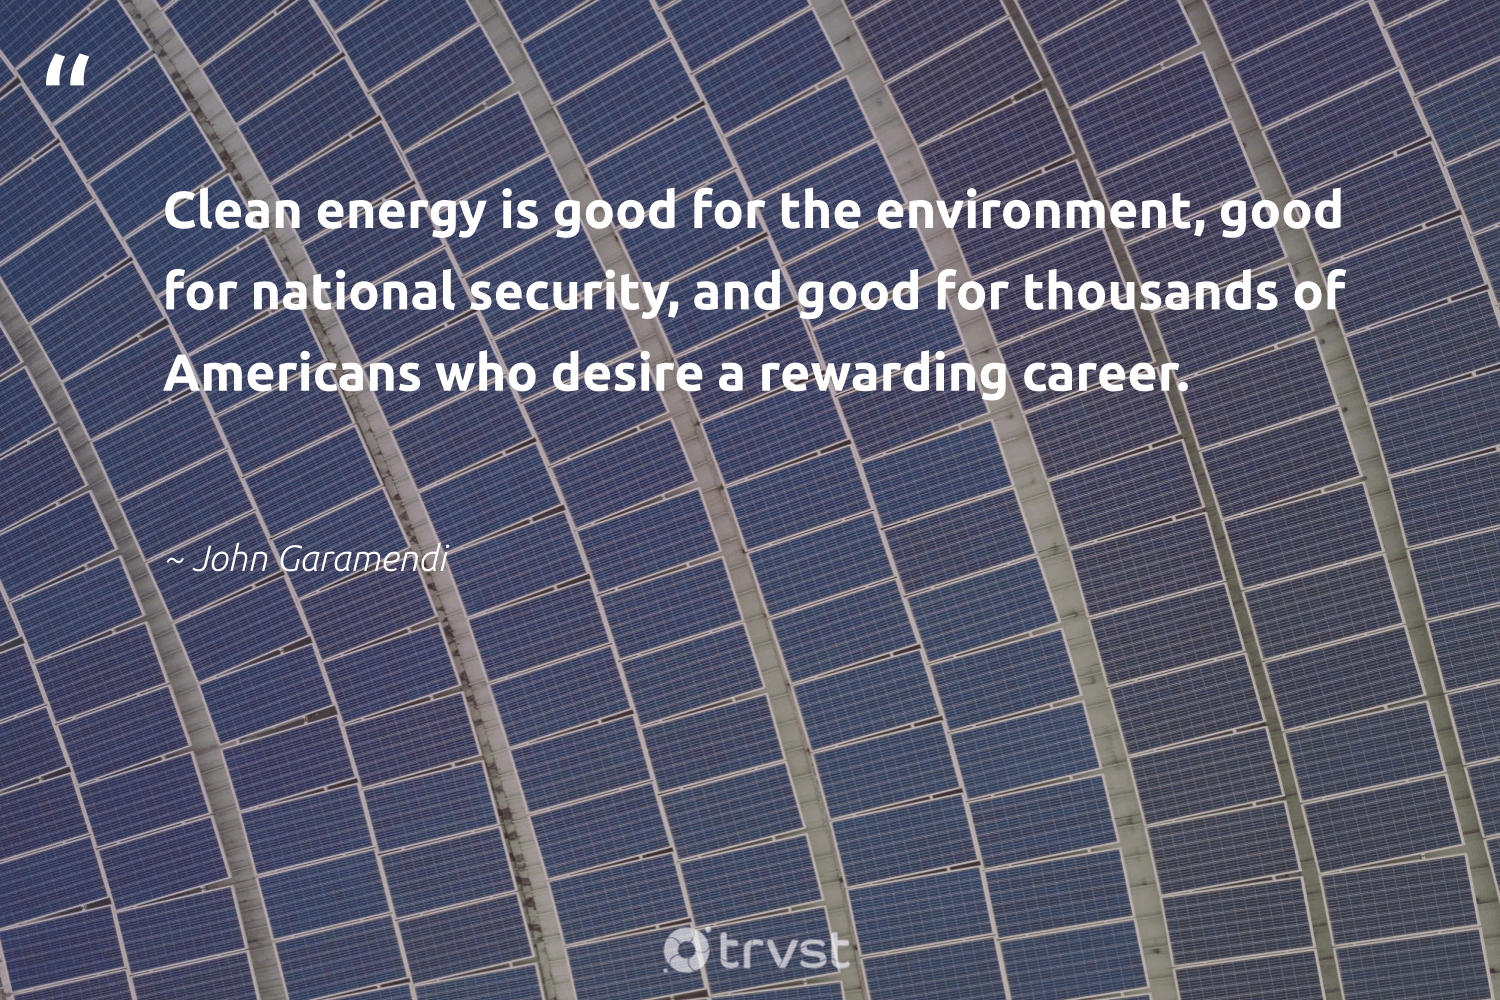 """""""Clean energy is good for the environment, good for national security, and good for thousands of Americans who desire a rewarding career.""""  - John Garamendi #trvst #quotes #renewableenergy #environment #energy #cleanenergy #switchfuelenergy #planetearth #climatechange #bethechange #affordable #environmentalist"""